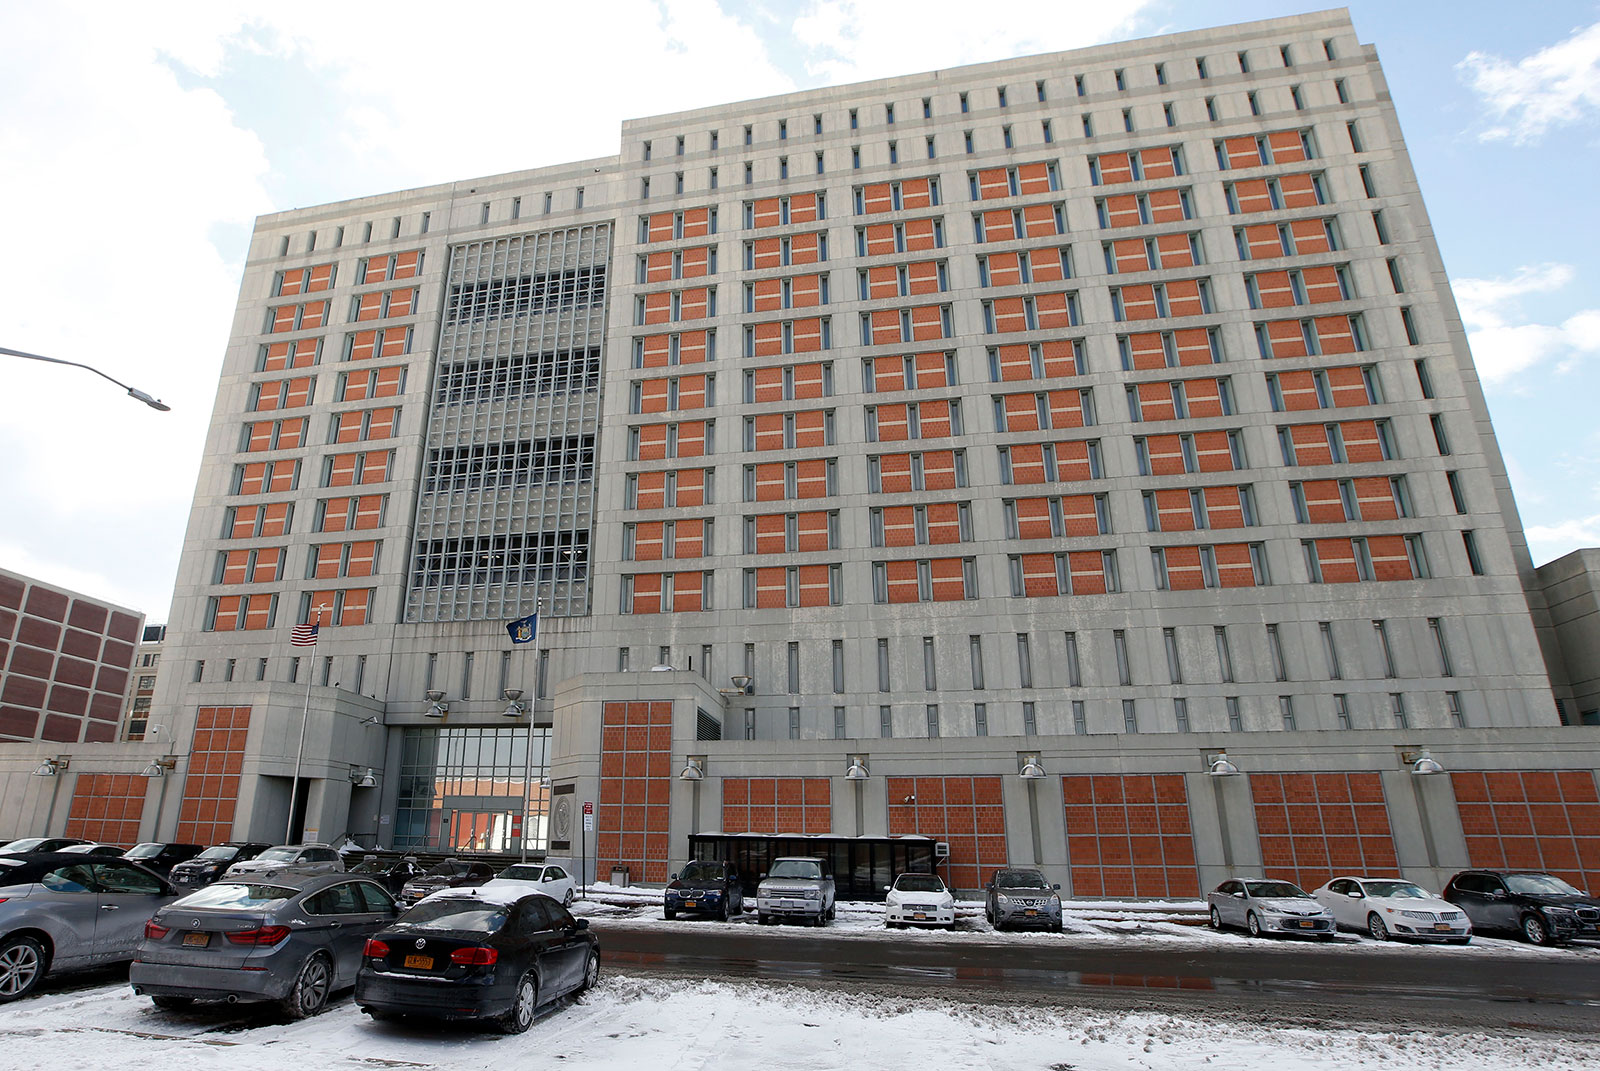 The exterior of the Metropolitan Detention Center in Brooklyn, New York.